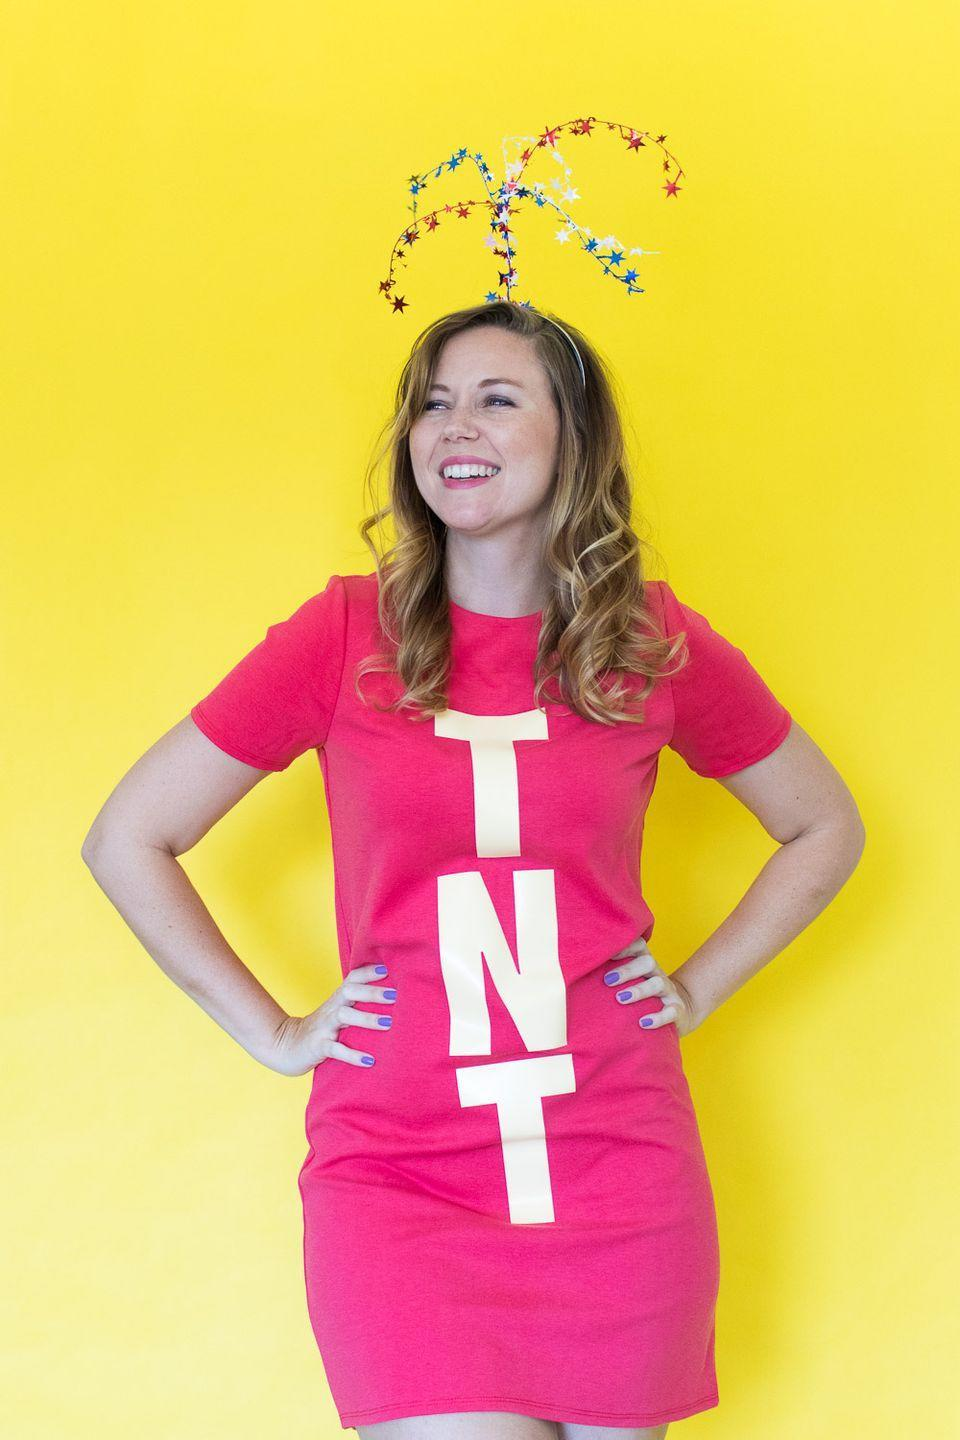 """<p>Quick and easy is the name of the game with this DIY dynamite costume.</p><p><strong>Get the tutorial at <a href=""""https://www.clubcrafted.com/no-sew-pacman-costume-halloween/"""" rel=""""nofollow noopener"""" target=""""_blank"""" data-ylk=""""slk:Club Crafted"""" class=""""link rapid-noclick-resp"""">Club Crafted</a>.</strong></p><p><a class=""""link rapid-noclick-resp"""" href=""""https://www.amazon.com/POPYOUNG-Womens-Casual-Summer-Dresses/dp/B07TML7VM8/ref=sr_1_2_sspa?tag=syn-yahoo-20&ascsubtag=%5Bartid%7C10050.g.23785711%5Bsrc%7Cyahoo-us"""" rel=""""nofollow noopener"""" target=""""_blank"""" data-ylk=""""slk:Shop Red Dresses"""">Shop Red Dresses</a></p>"""